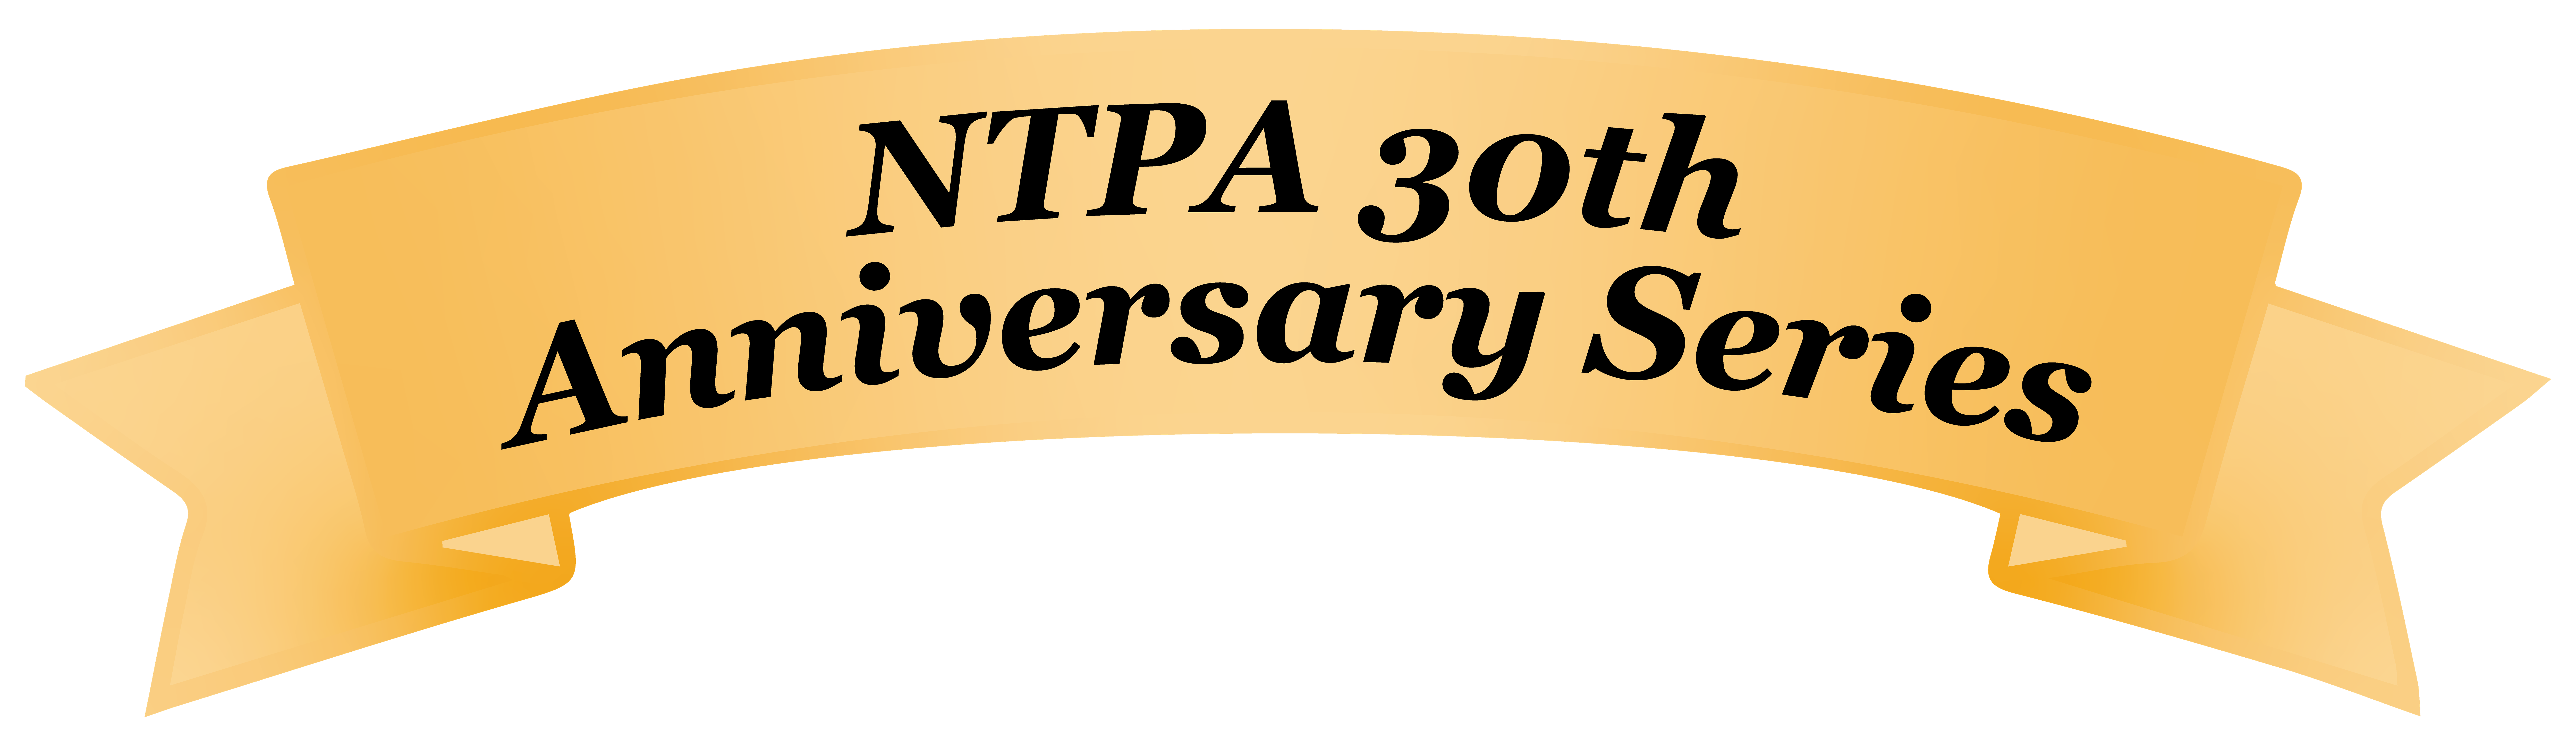 30th Anniversary Series Banner in gold